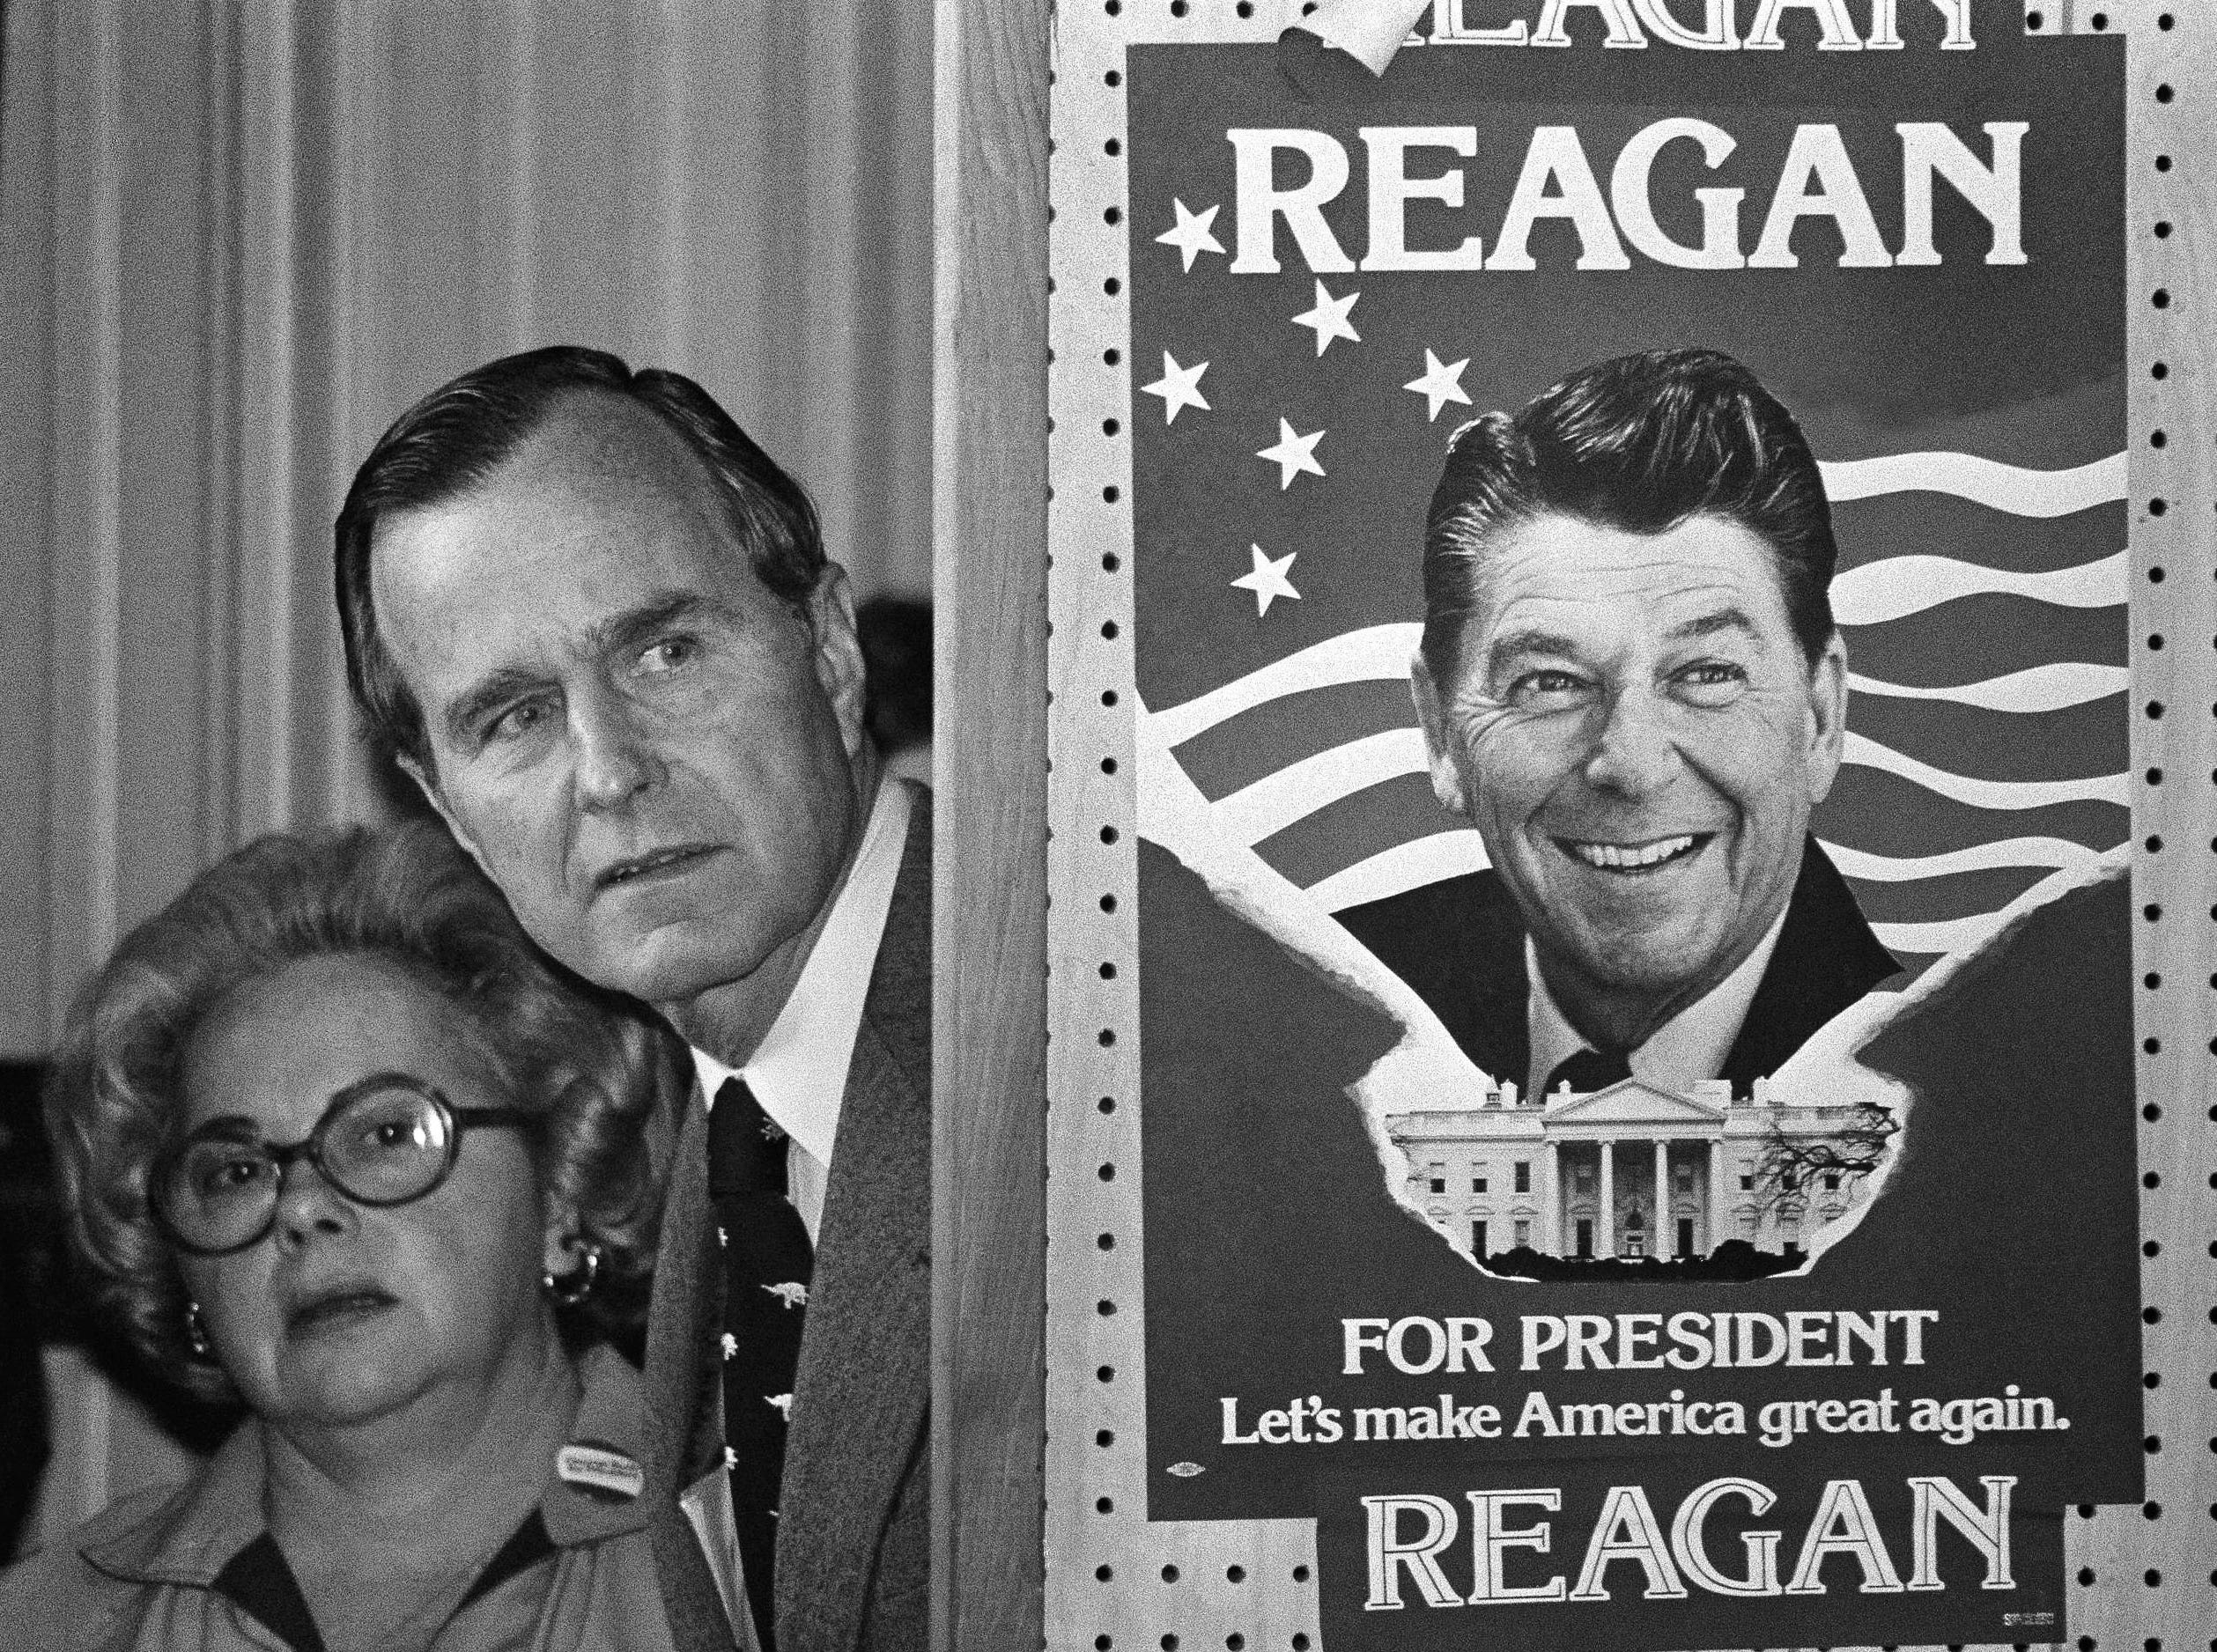 FILE - In this March 4, 1980 file photo, George H.W. Bush and an unidentified woman peek around a partition with a poster of Ronald Reagan, one of his opponents for the Republican party presidential nomination, before he speaks in Columbia, S.C. Bush has died at age 94. Family spokesman Jim McGrath says Bush died shortly after 10 p.m. Friday, Nov. 30, 2018, about eight months after the death of his wife, Barbara Bush. (AP Photo, File)